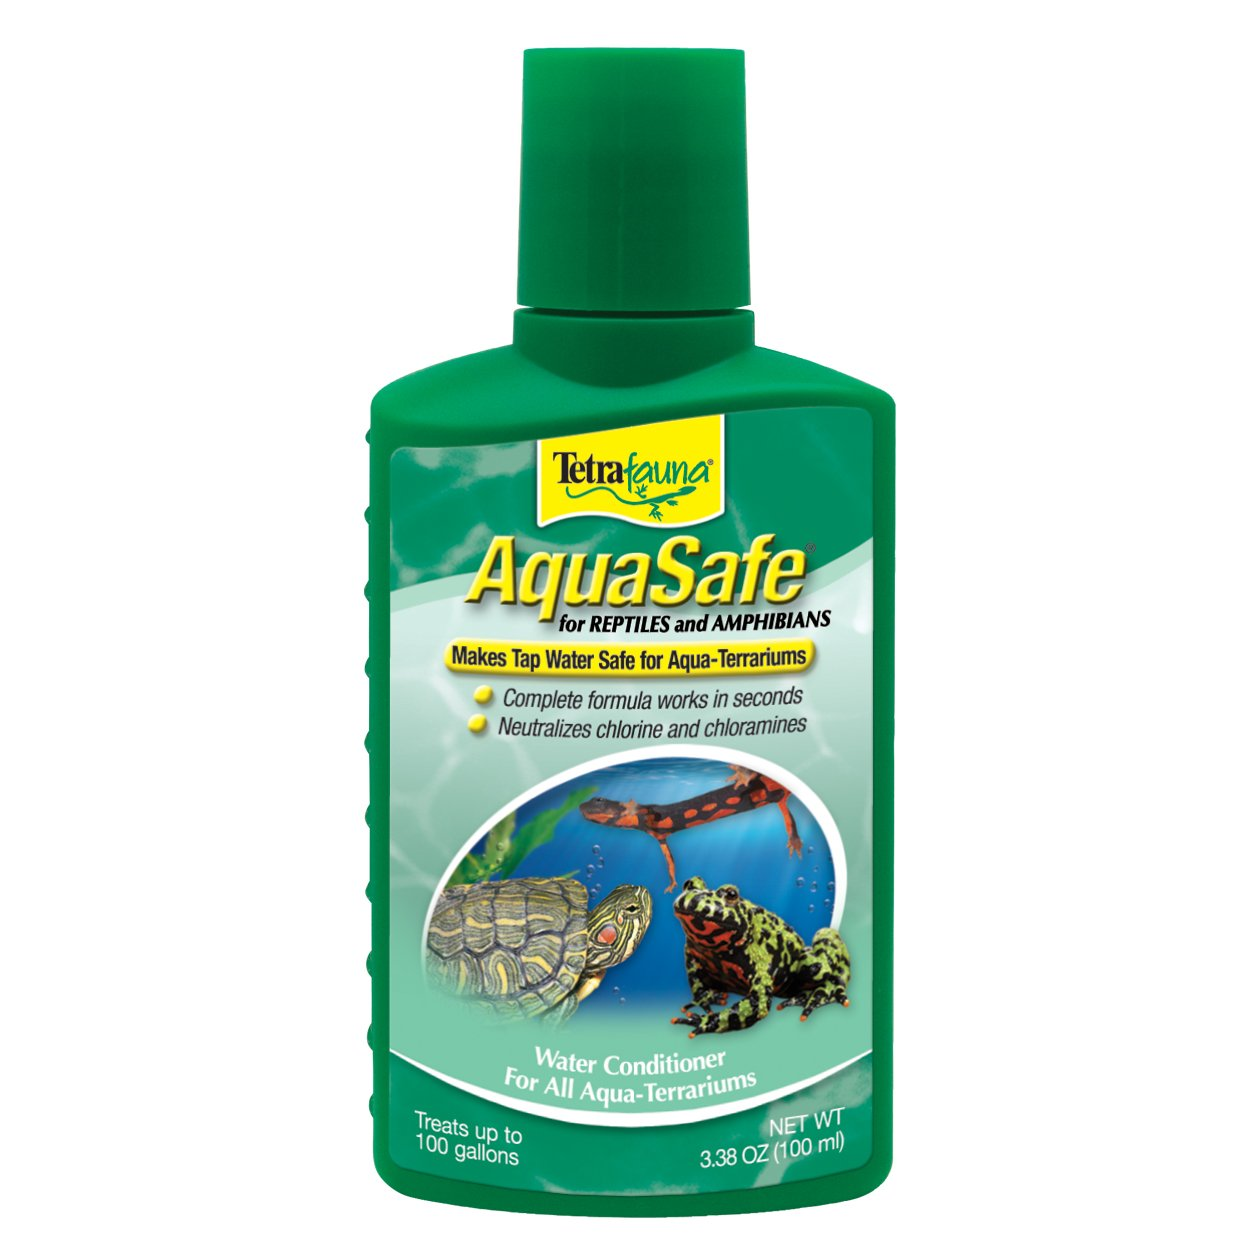 TetraFauna AquaSafe Water Conditioner for Reptiles & Amphibians 3.38oz (75077009)